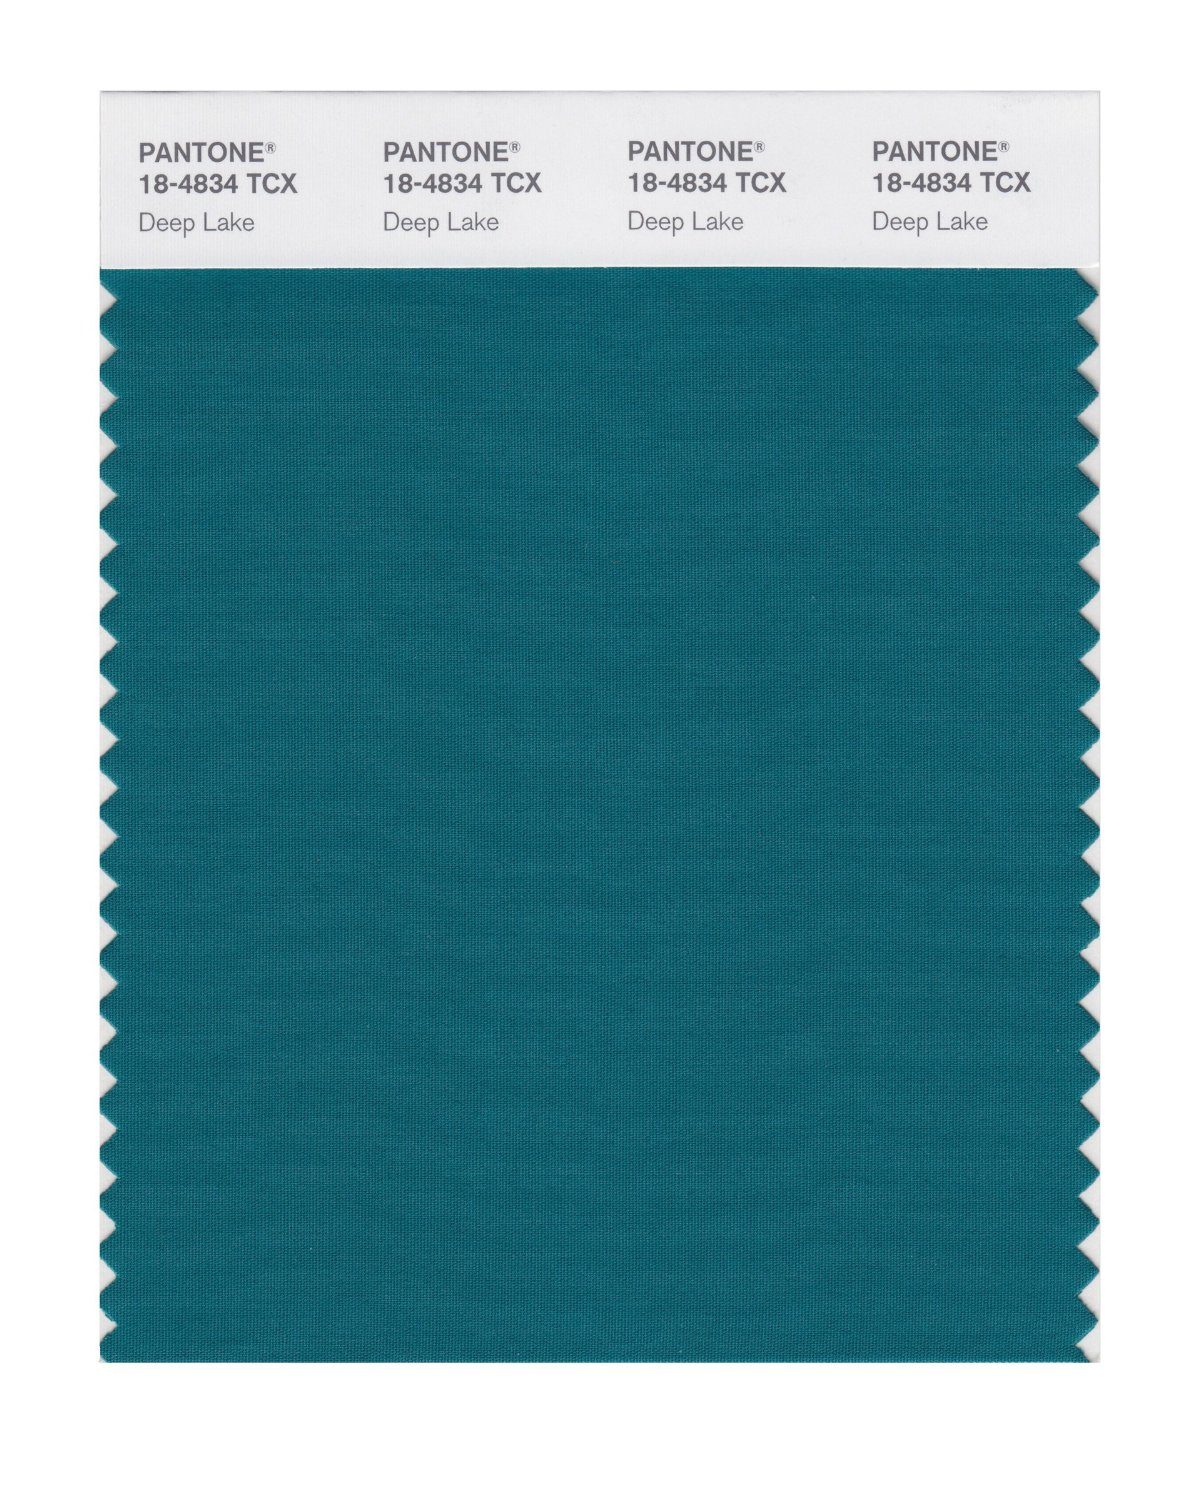 Pantone Smart Swatch 18-4834 Deep Lake